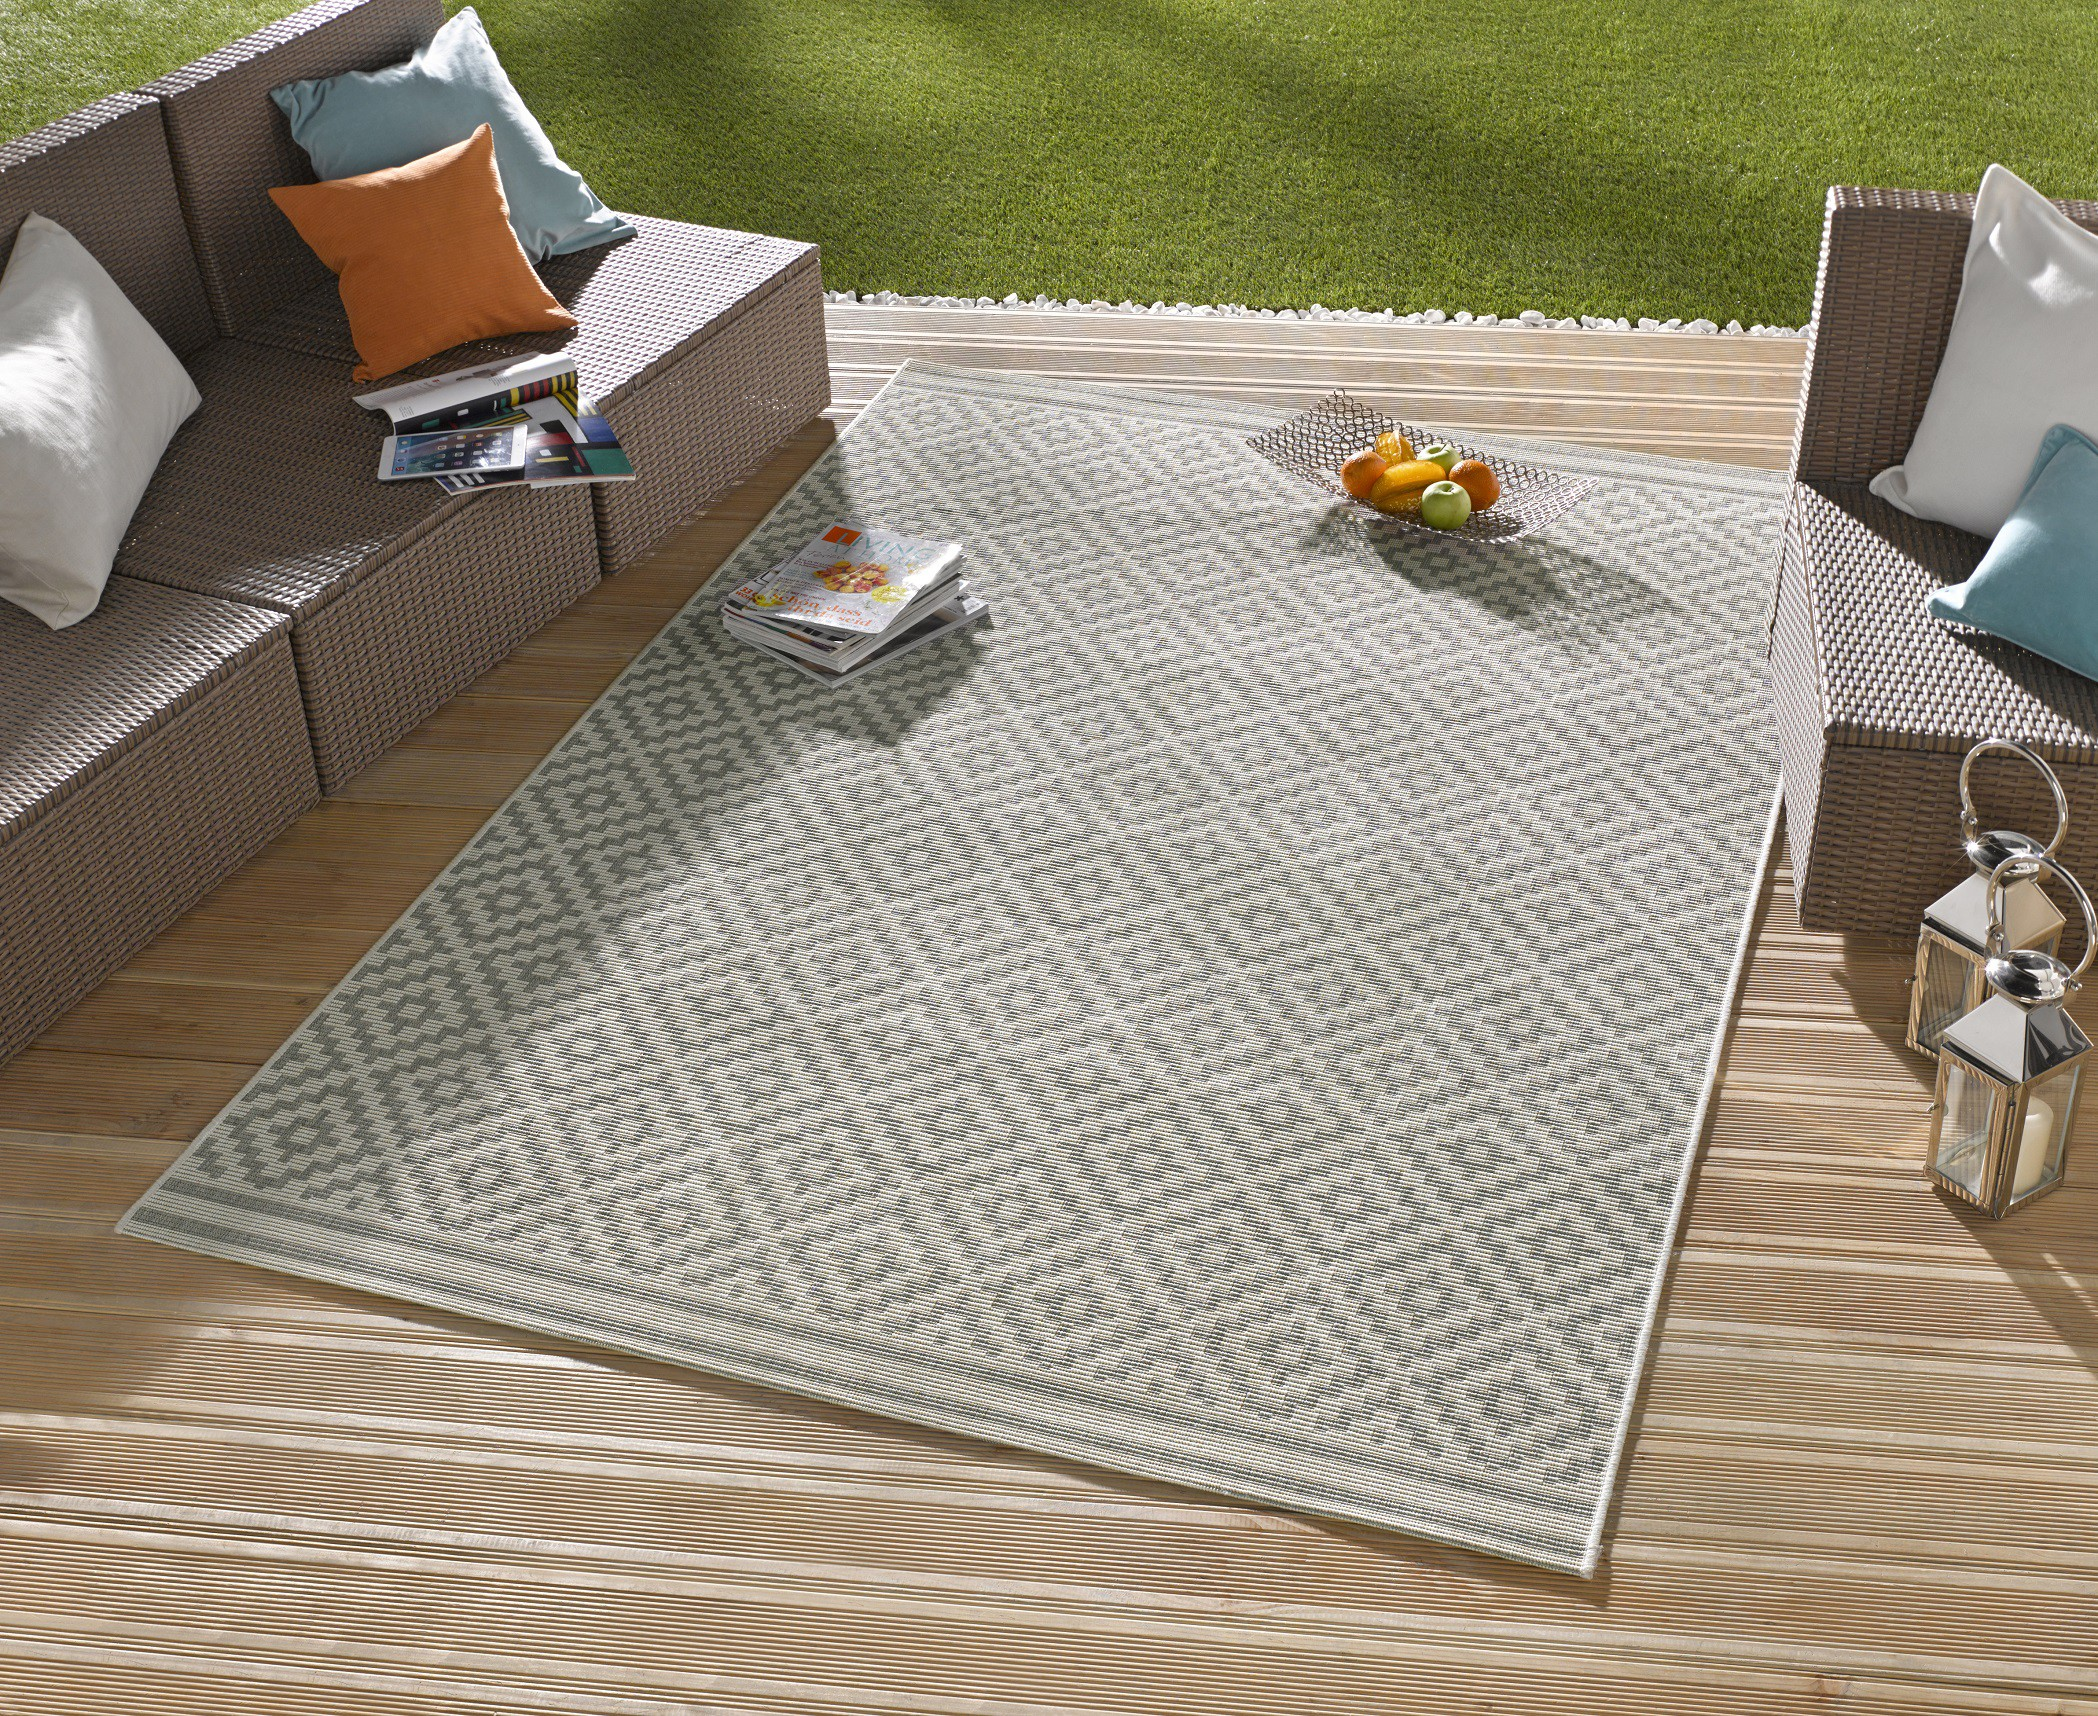 Teppich Outdoor in outdoor design teppich terrasse wintergarten 160 x 230 cm